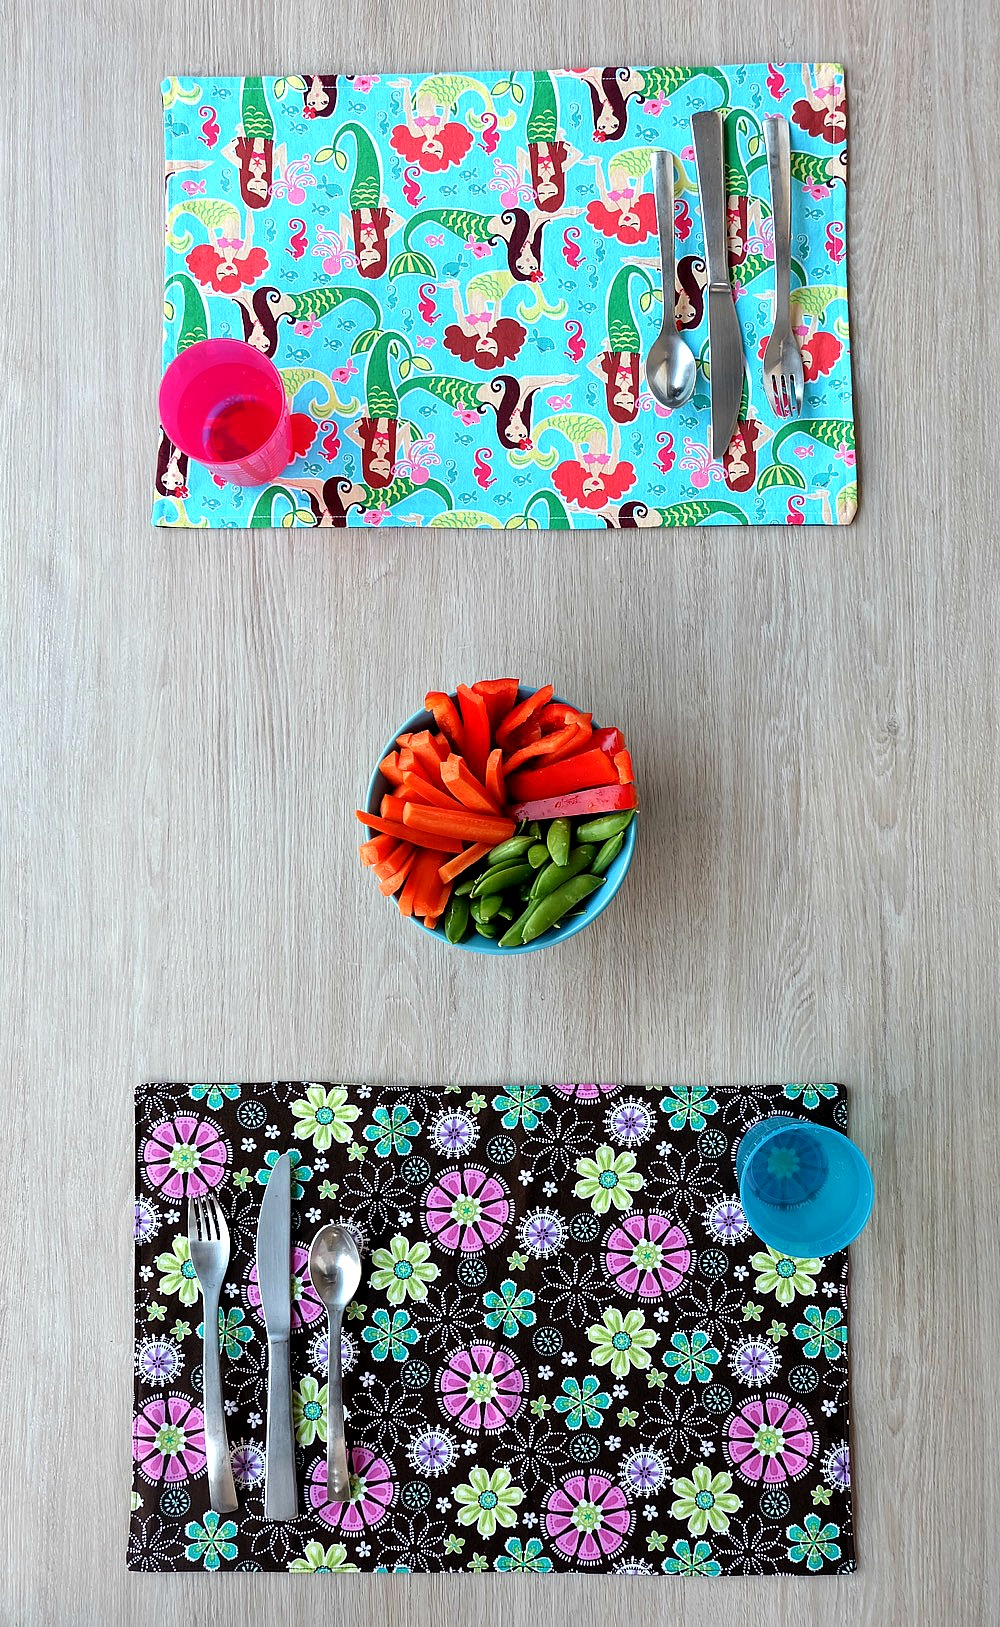 This 10 minute sewing project is perfect for beginner sewers. This free tutorial has step by step photos that make it easy to learn to sew reversible placemats that kids and adults will love. A great handmade gift idea that you can customize, this project is easy enough for kids new to sewing!